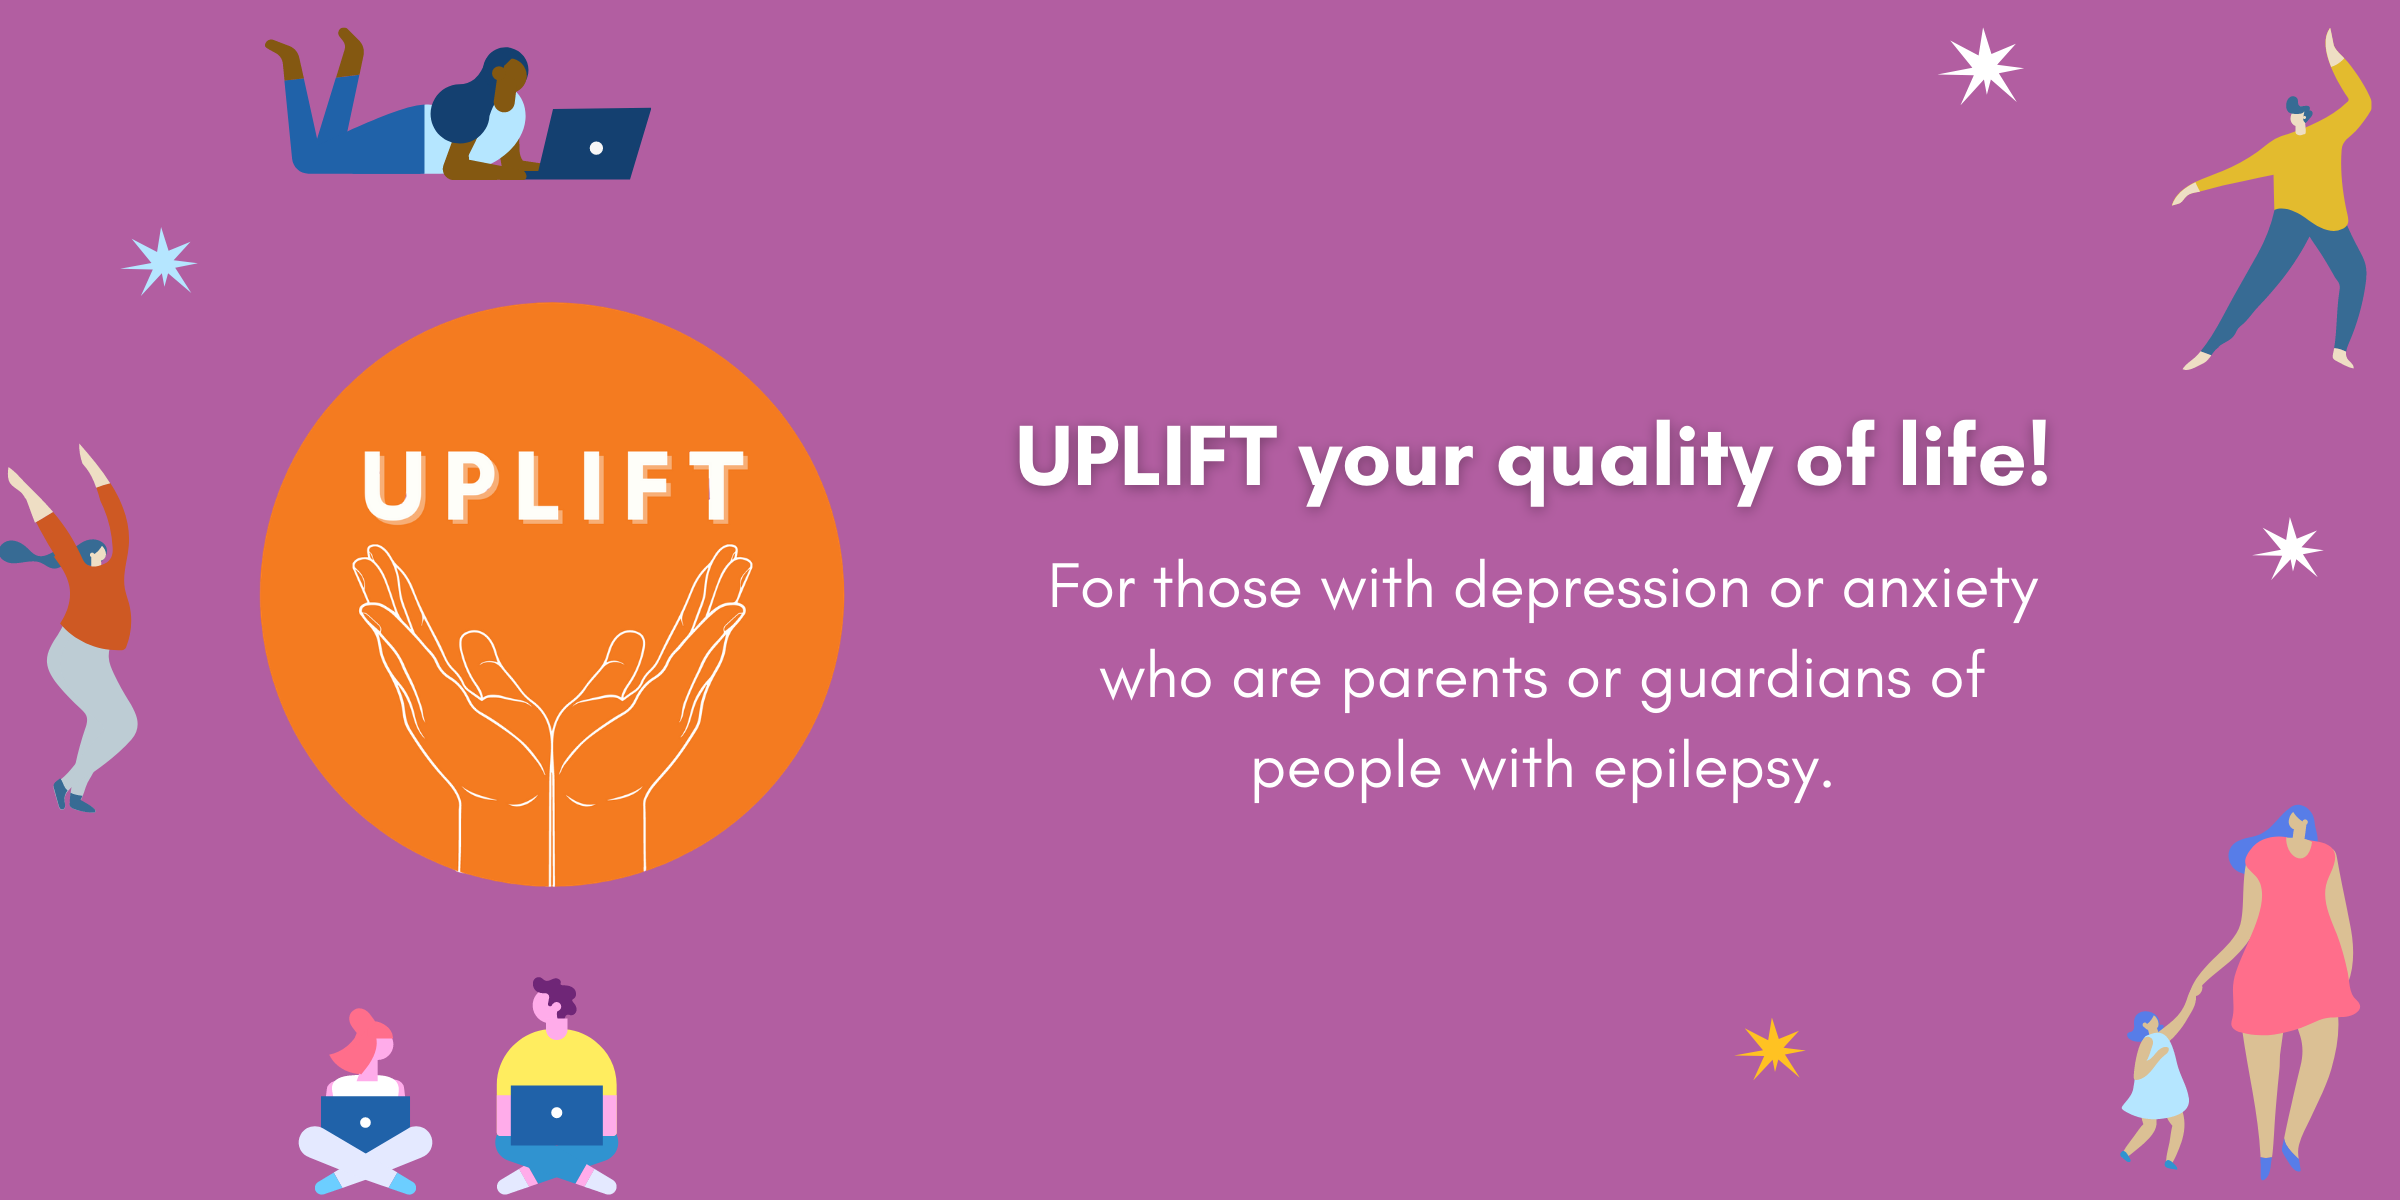 UPLFIT graphic - for those with depression or anxiety who are parents or guardians of someone with epilepsy/seizures